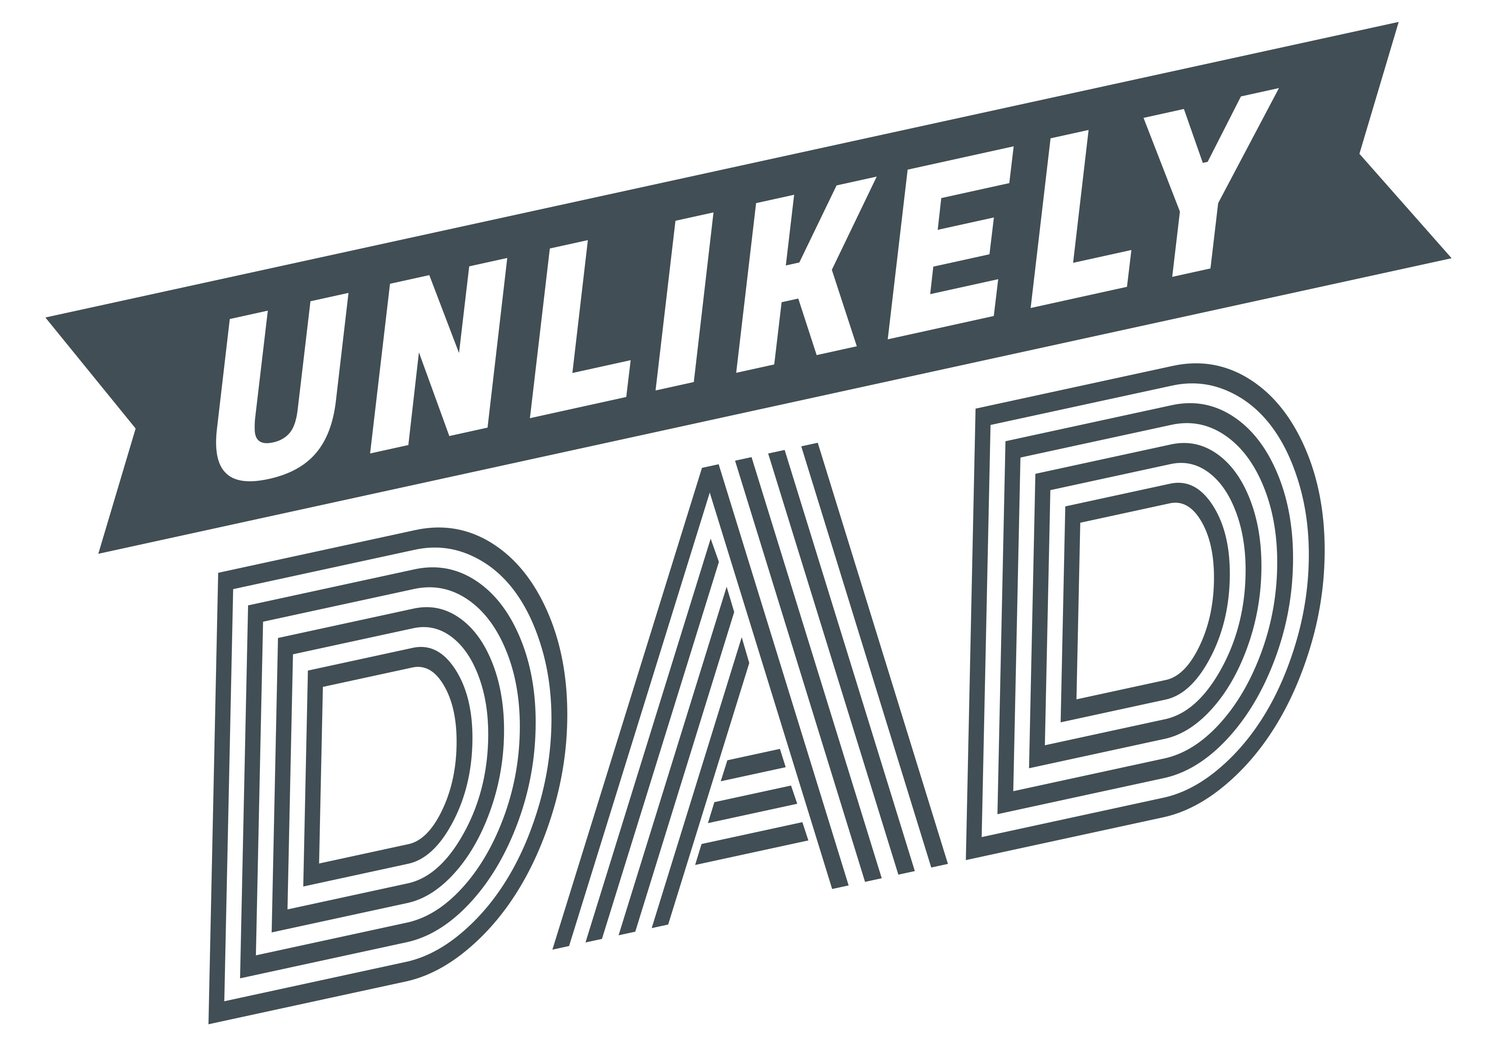 UNLIKELY DAD